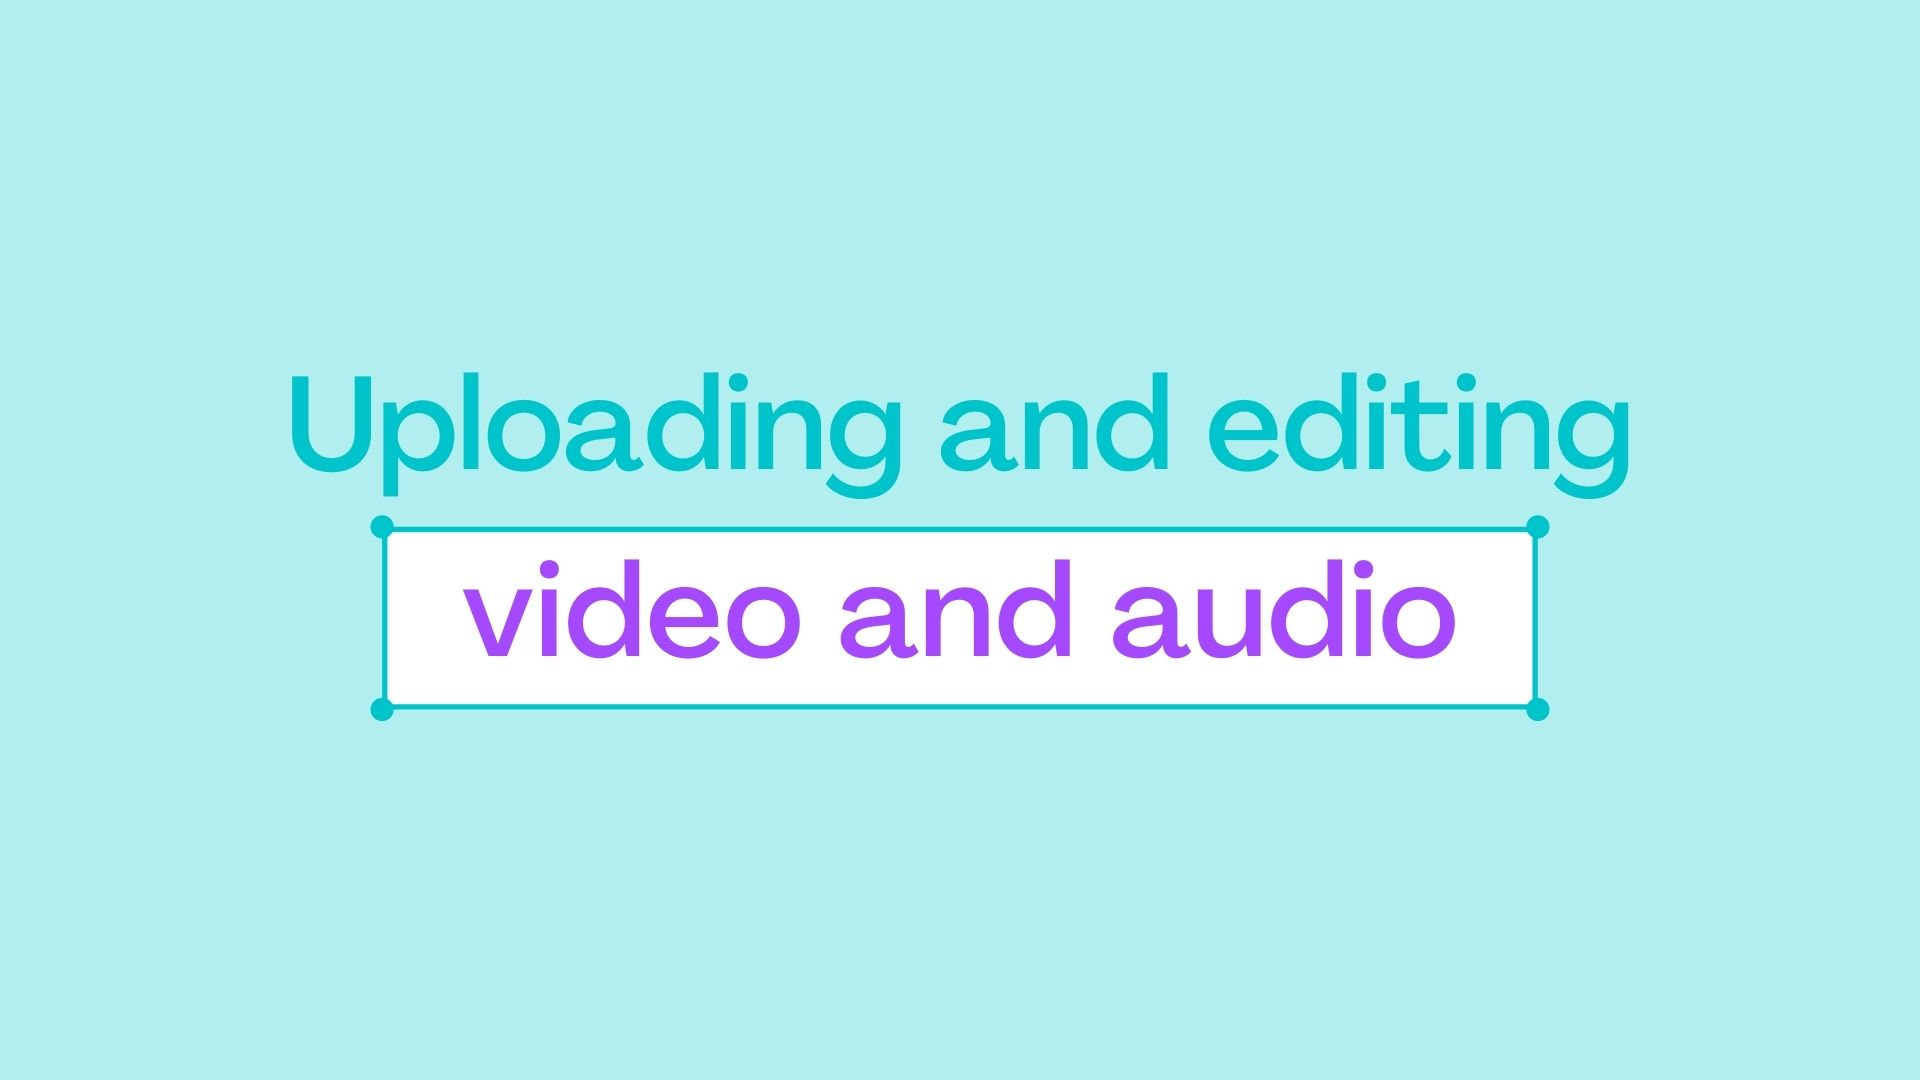 1.7 Uploading and editing video and audio